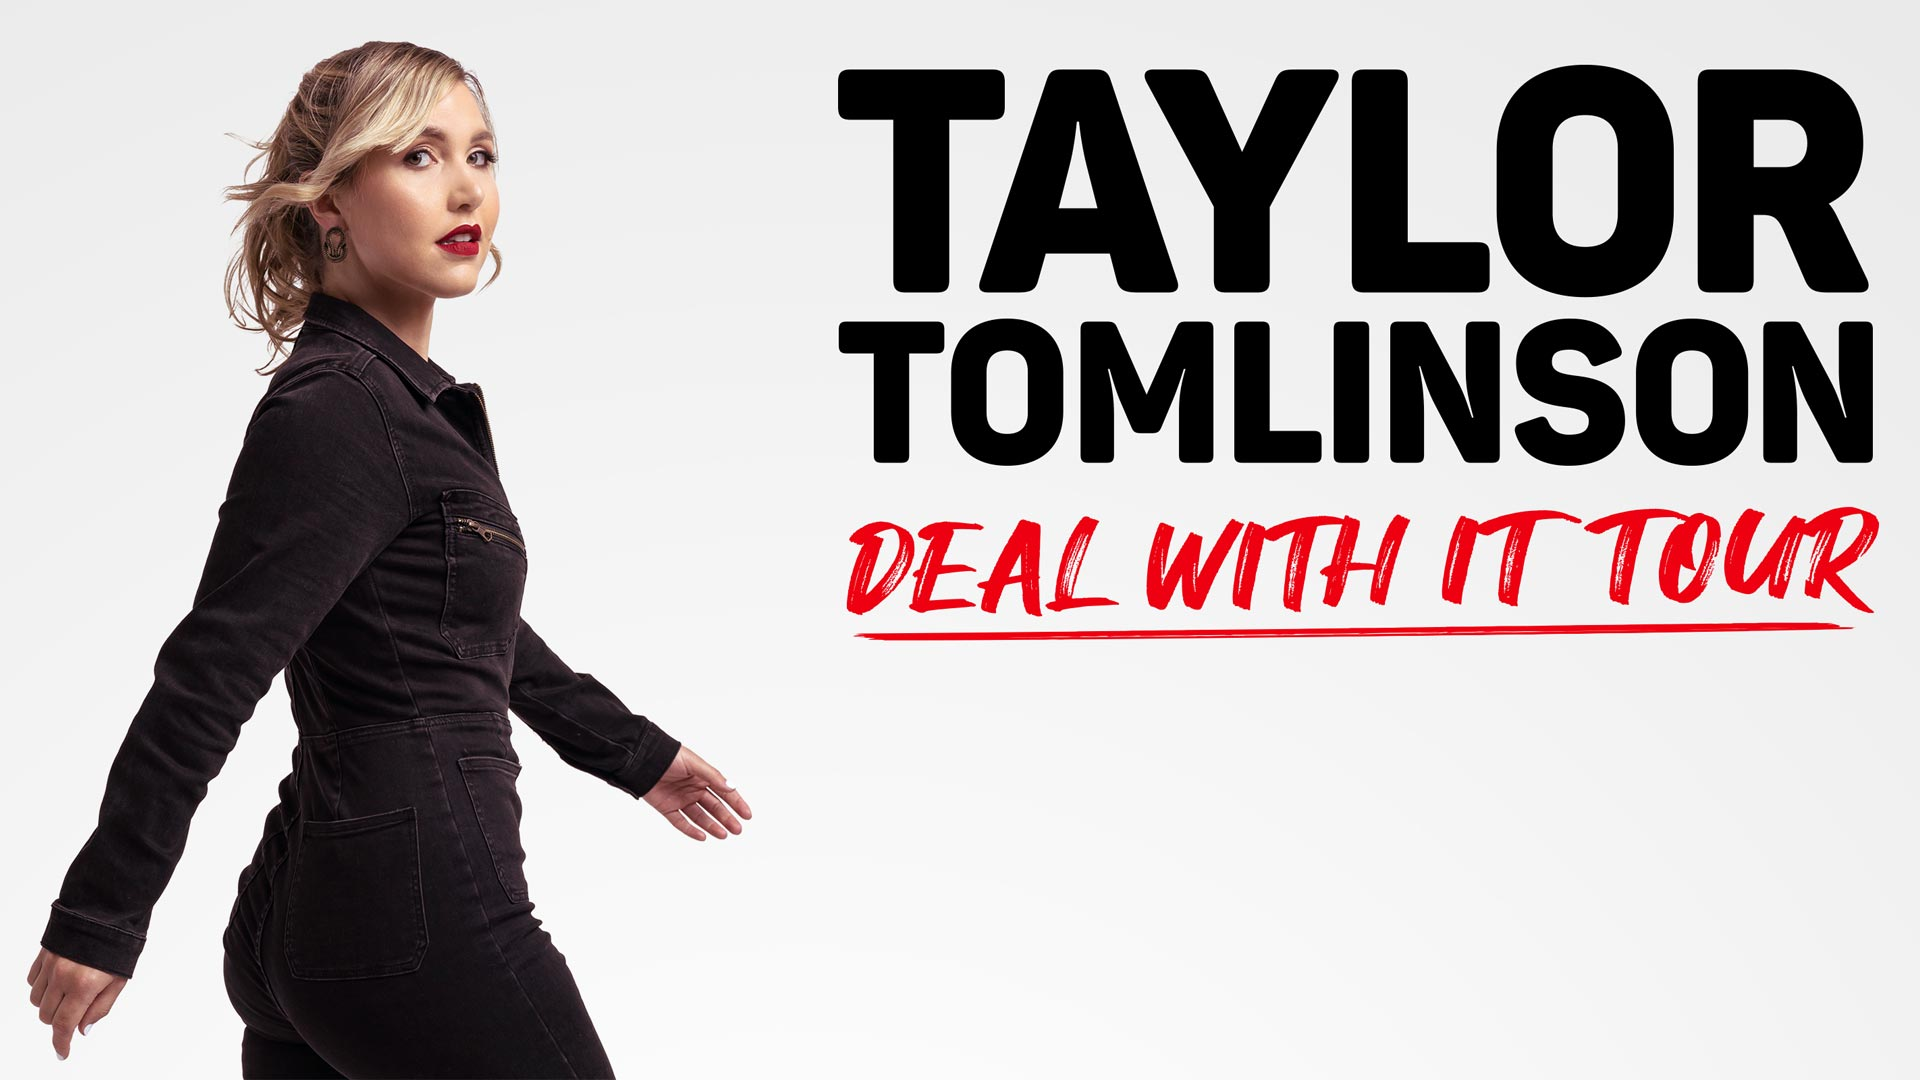 comedy, stand up comedy, taylor tomlinson, capital one hall, capital one center, things to do in DC, comedian, Tysons, Last Comic Standing